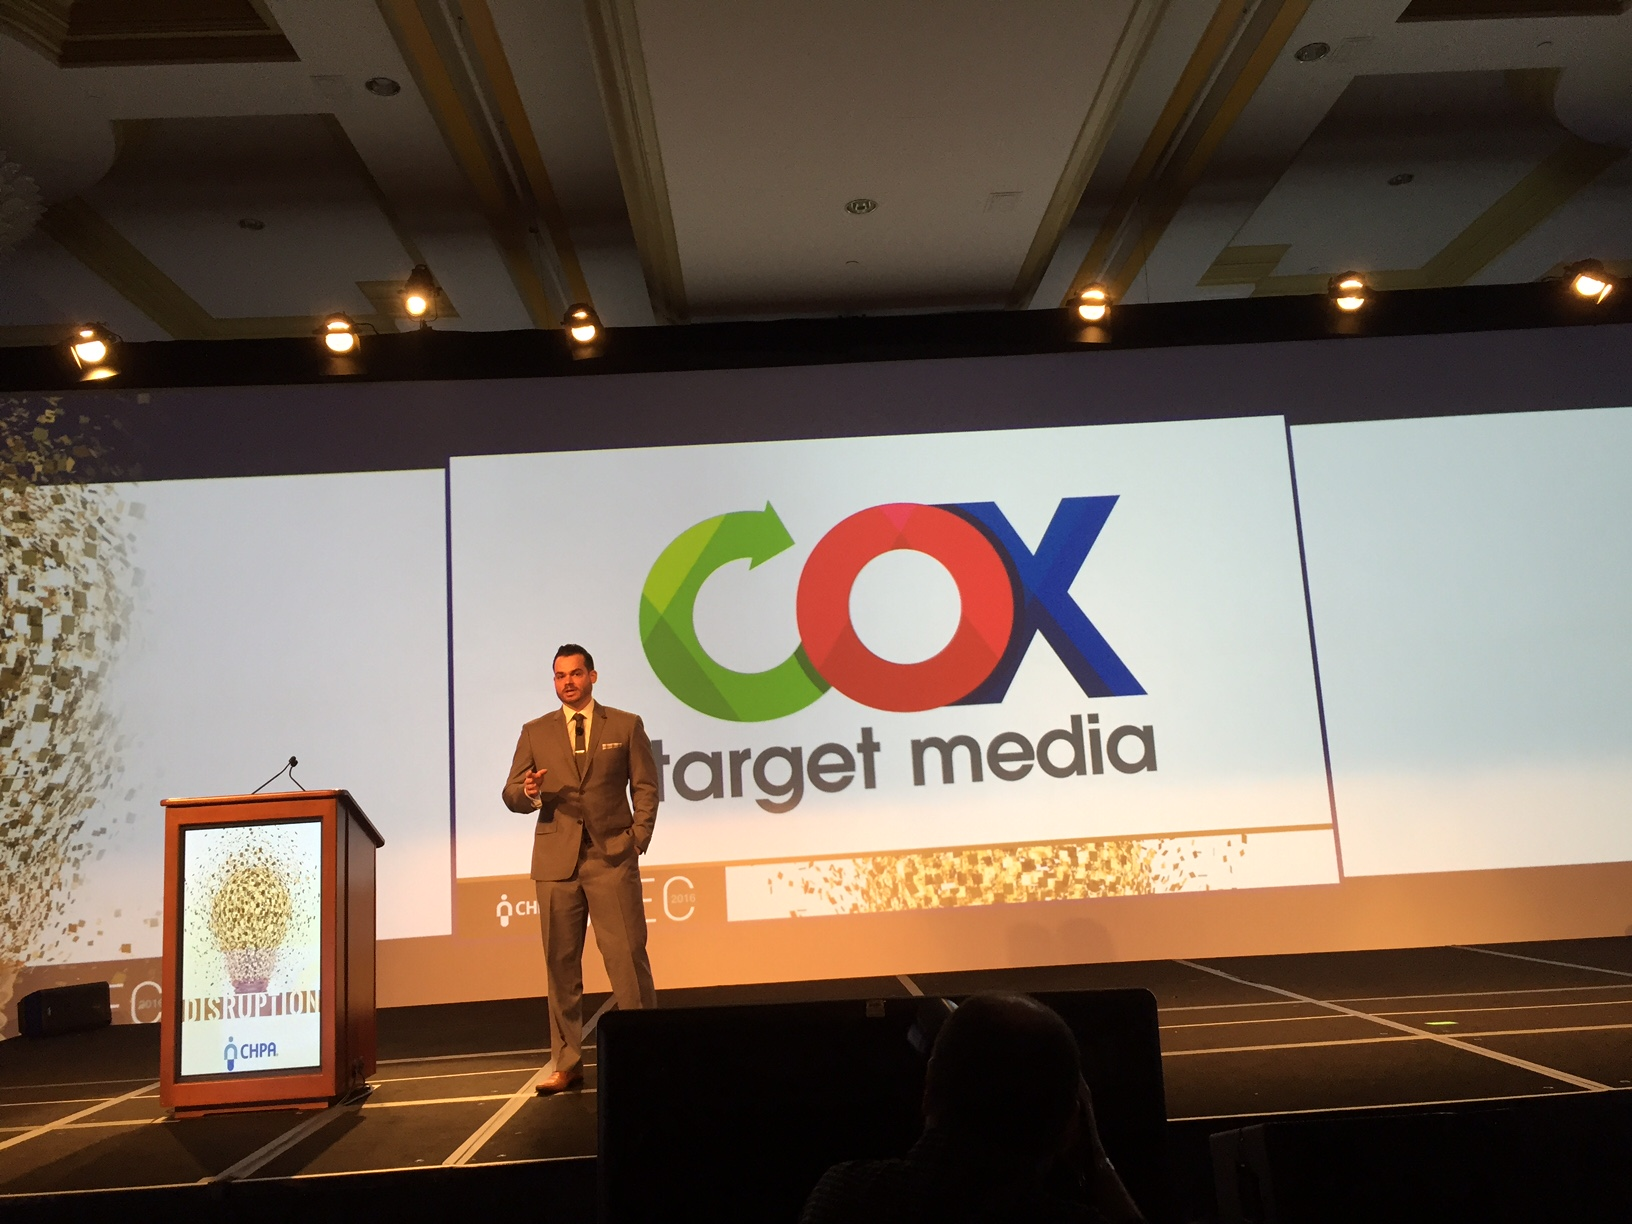 Cox Target Media Reaffirms Market Strength As Key Sponsor At CHPA's Annual Executive Leadership Conference